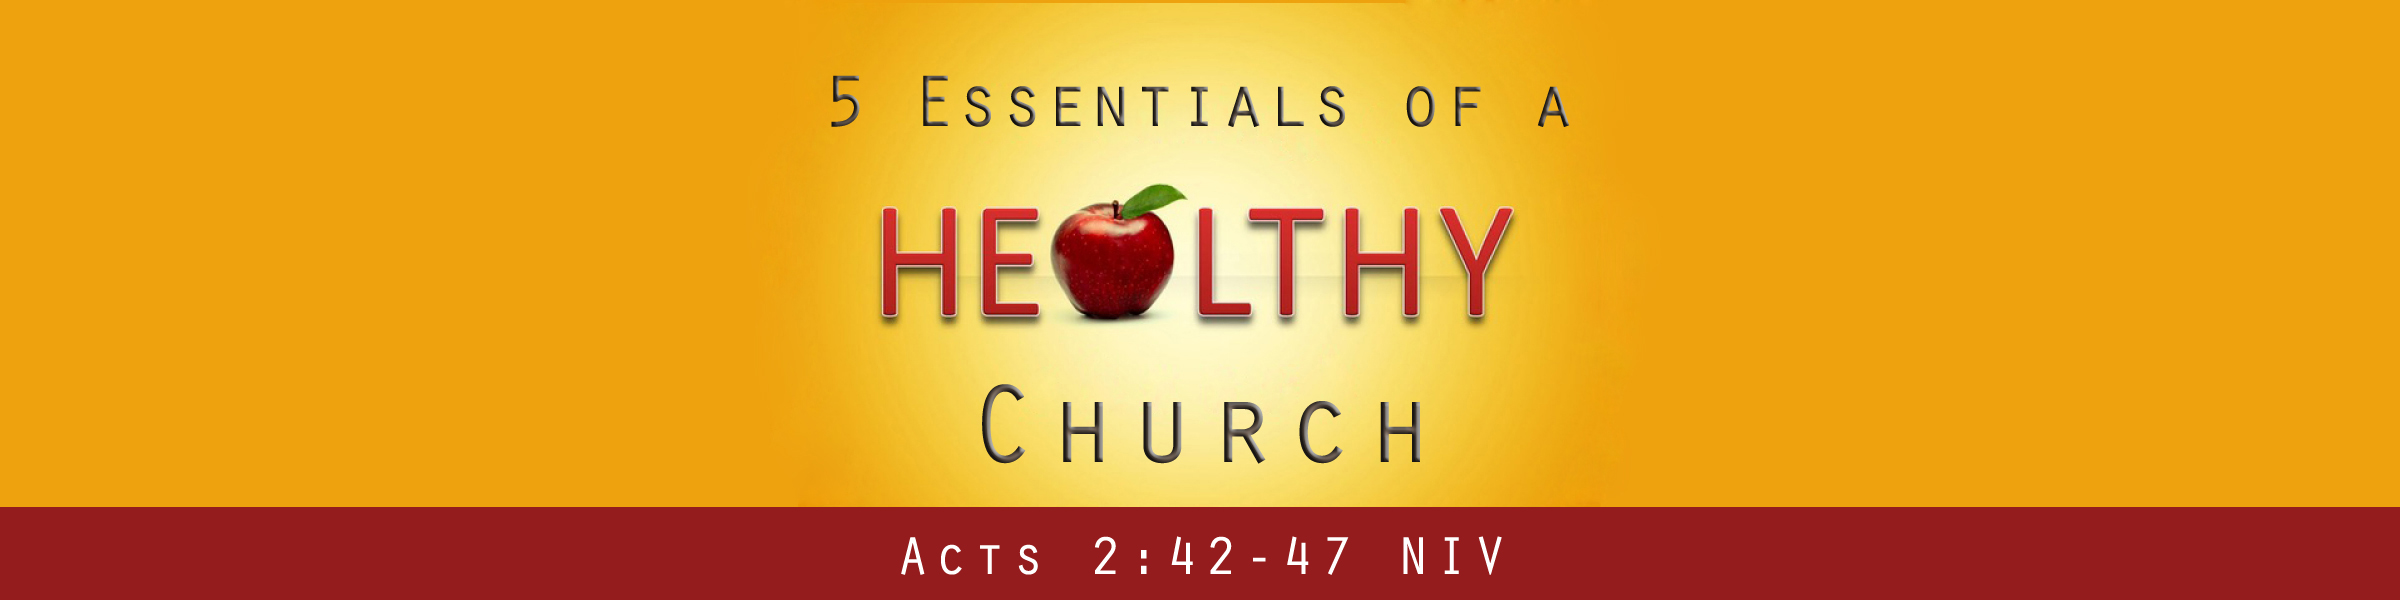 5 Essentials of a Healthy Church